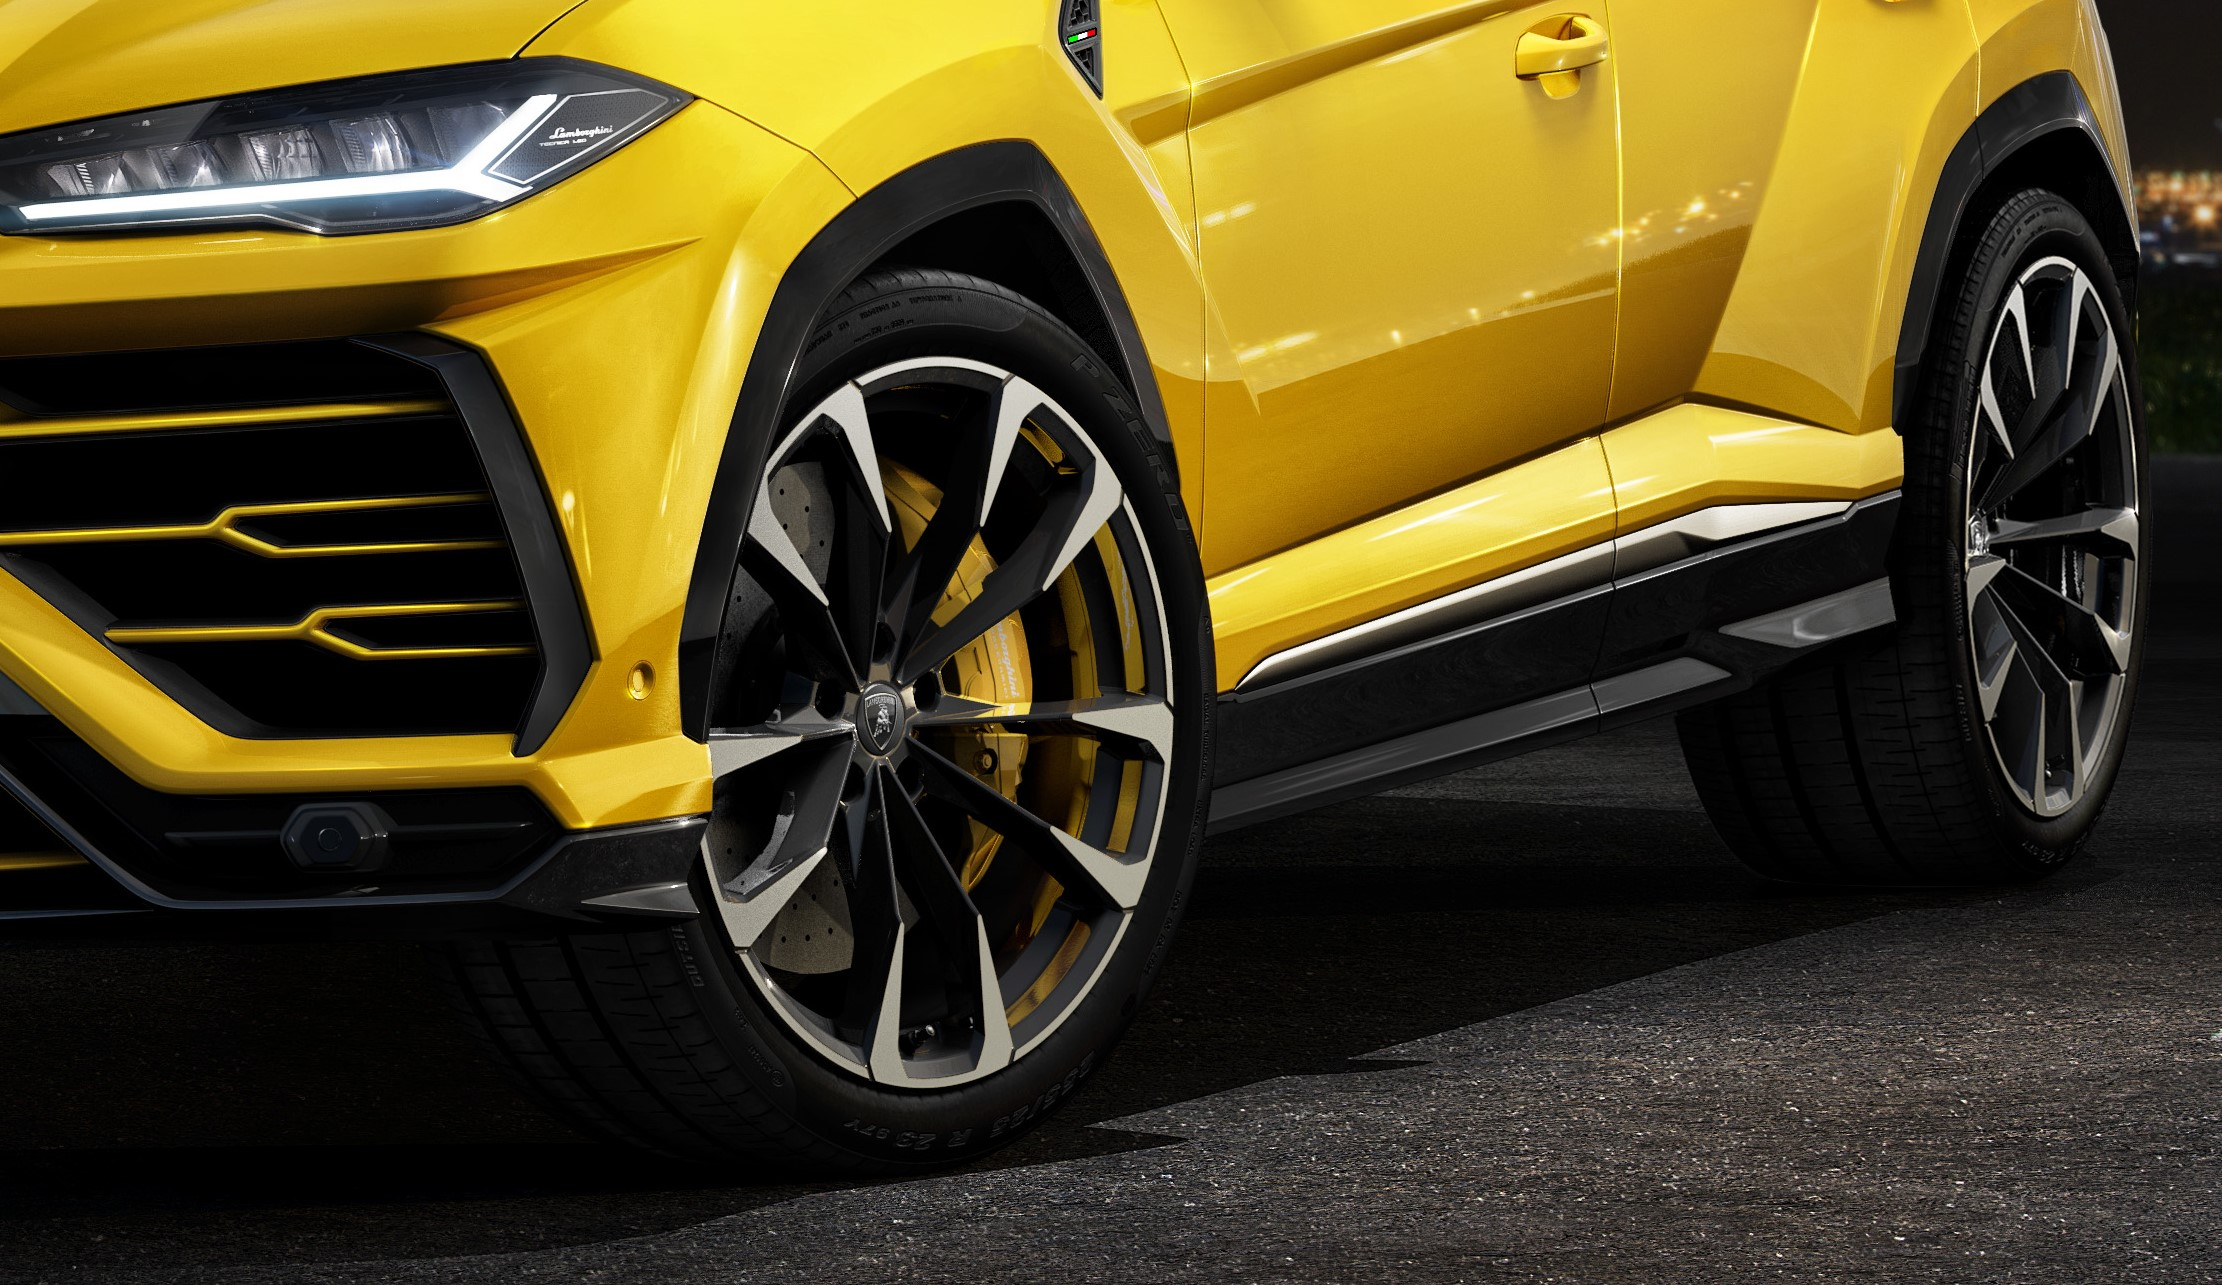 How To Read Tire Size >> Pirelli Has Six Different Tire Options For The Lamborghini ...